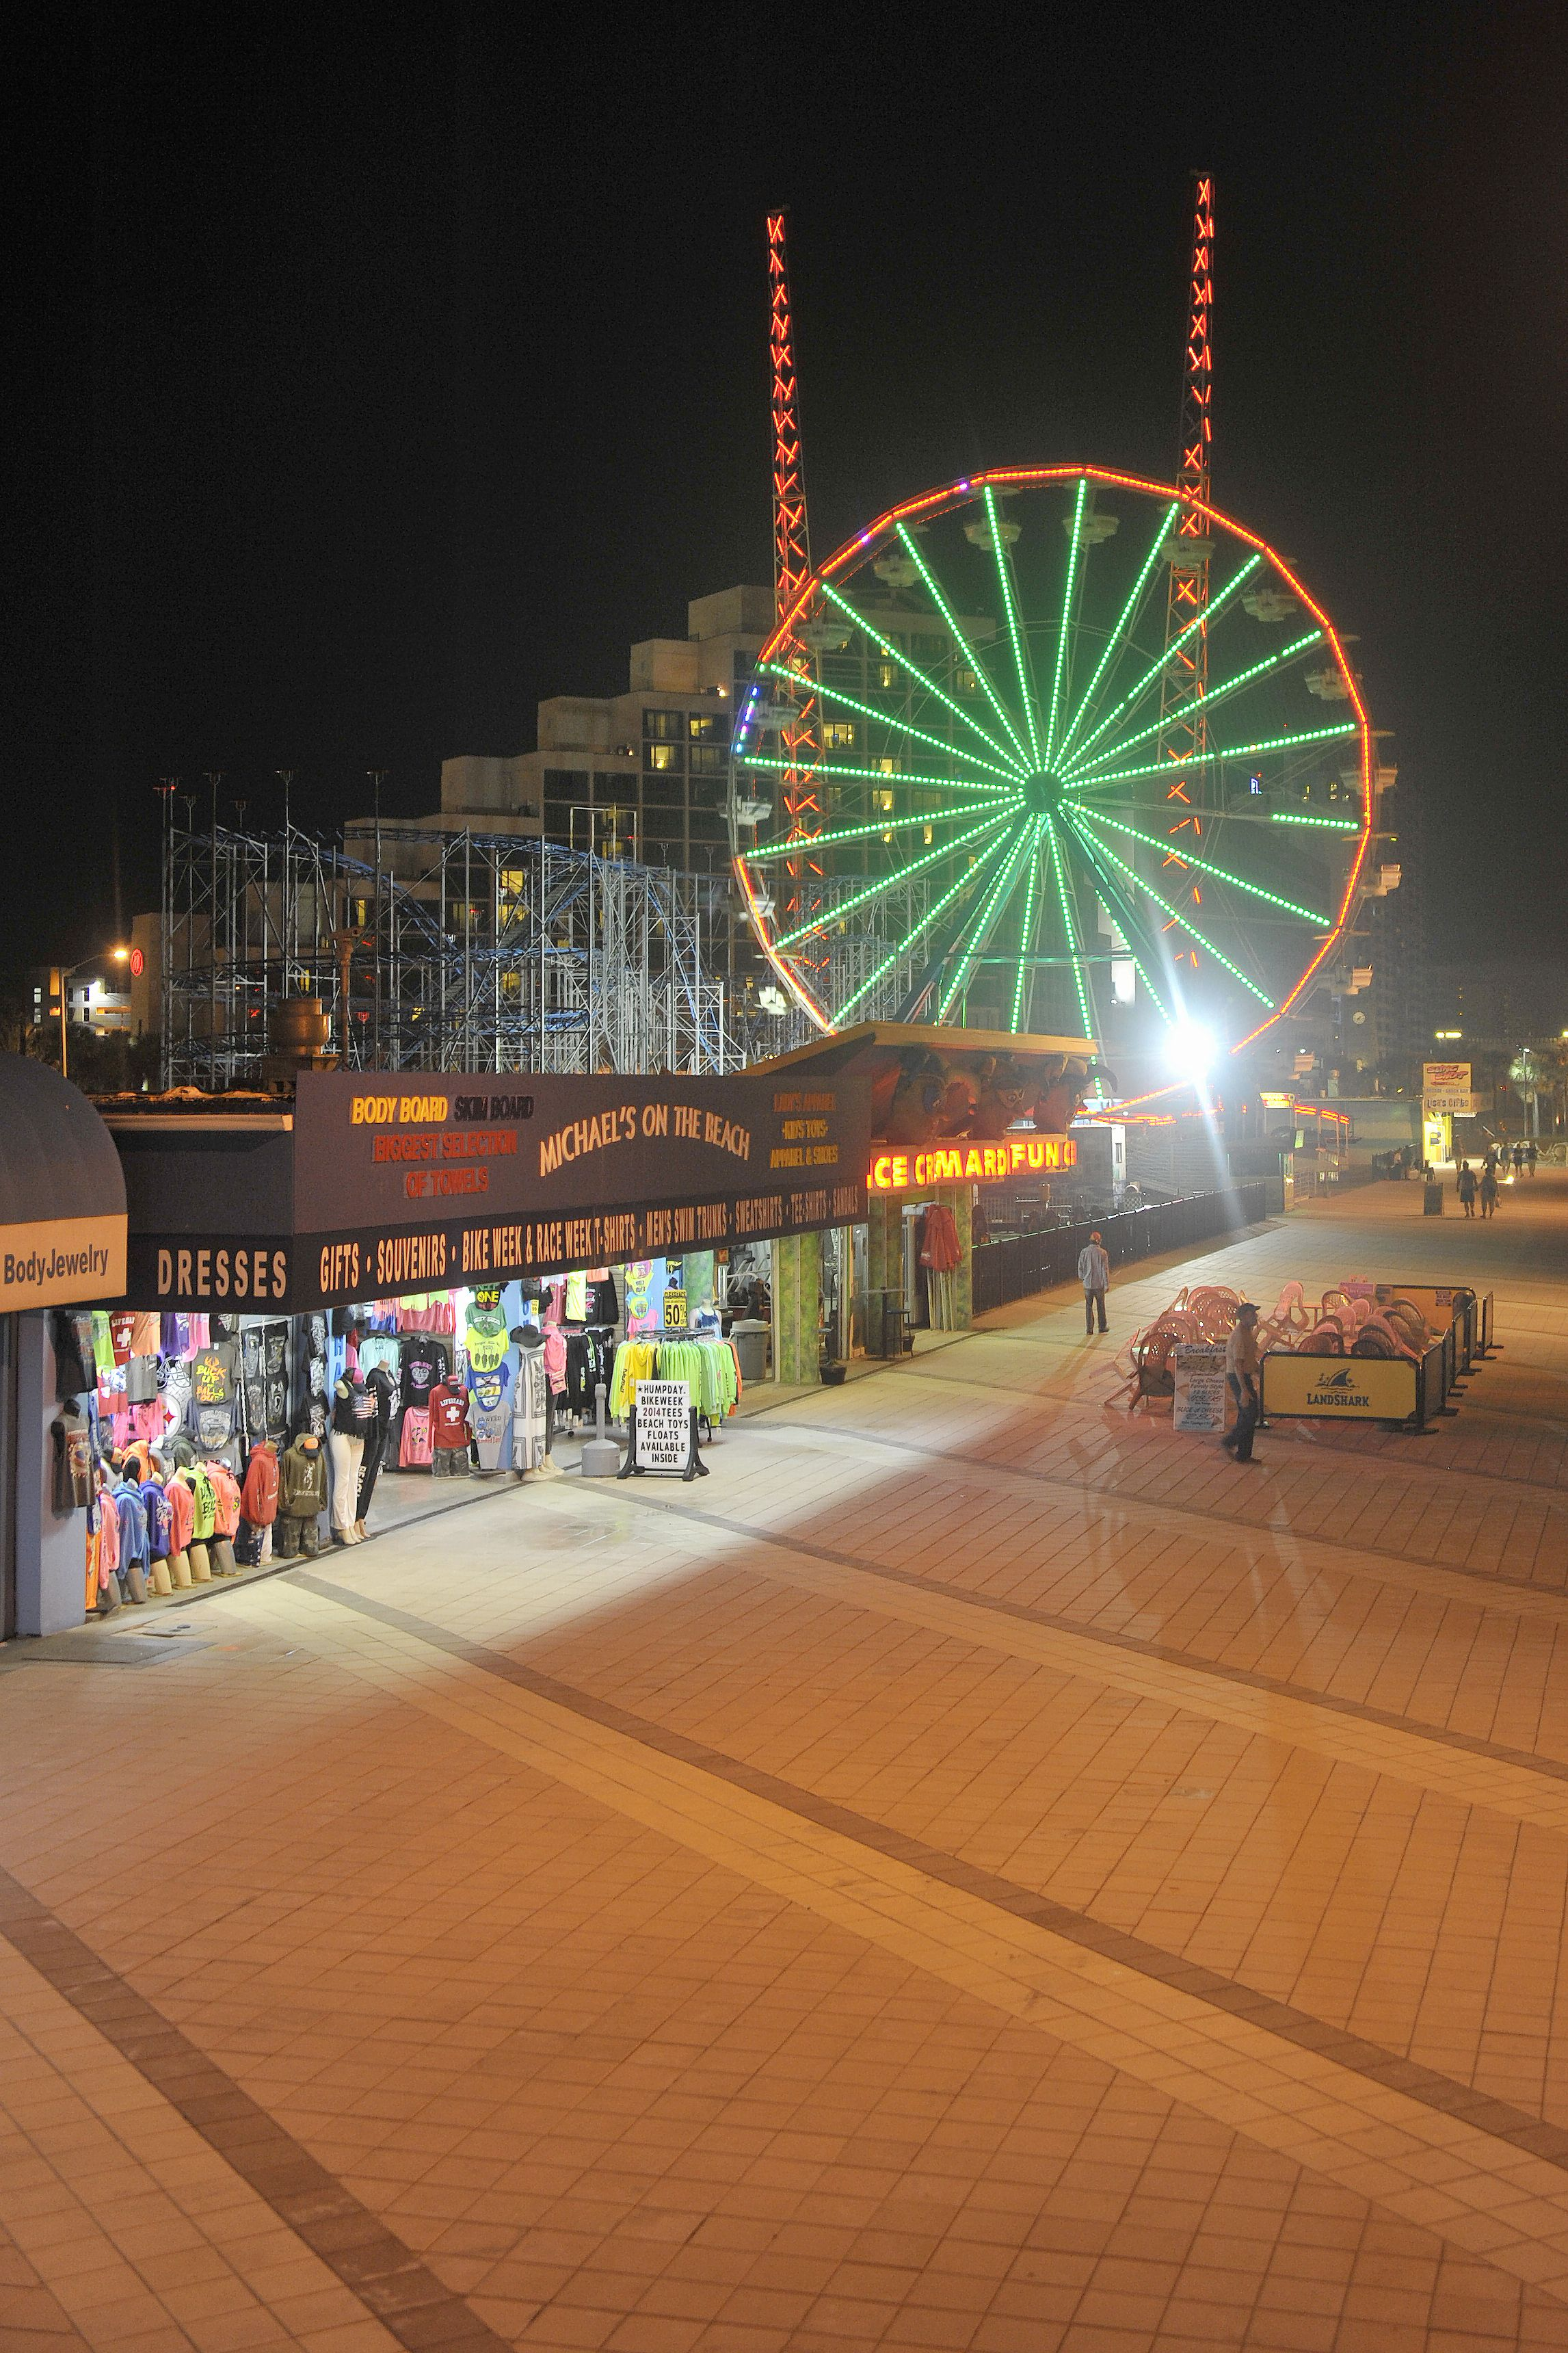 Boardwalk Daytona Beach Florida Best Place In The Whole World I Swear To Gosh